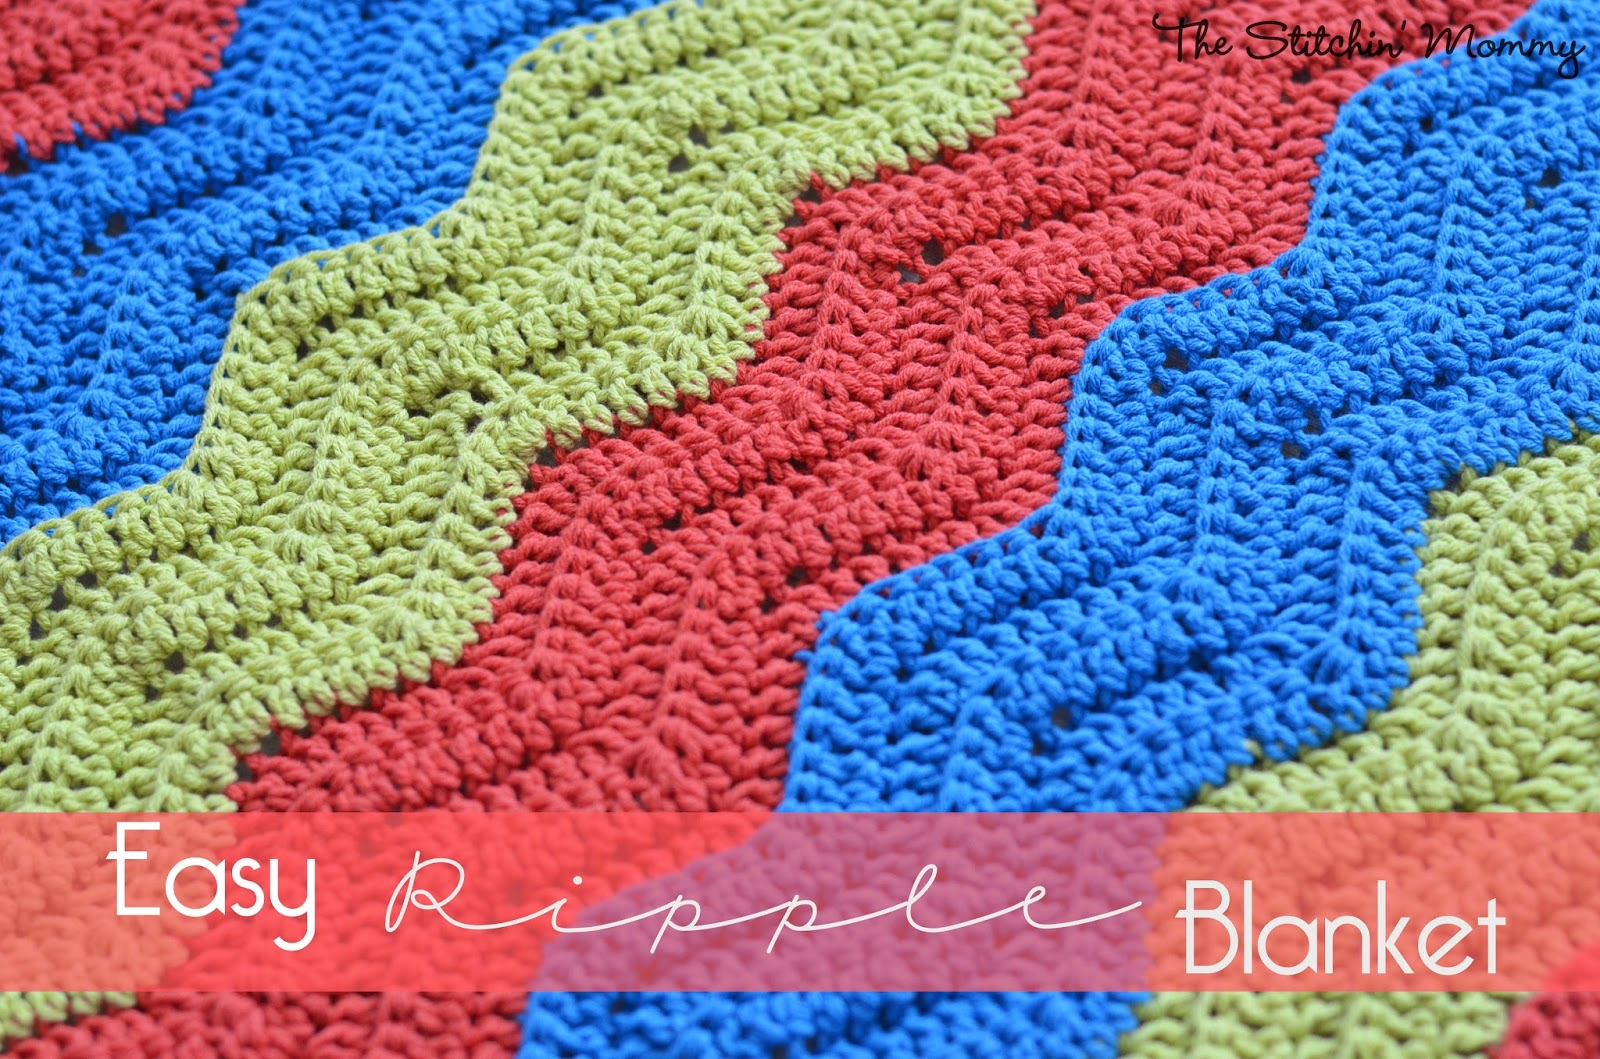 Crochet Ripple Stitch : Easy Crochet Ripple Blanket - The Stitchin Mommy